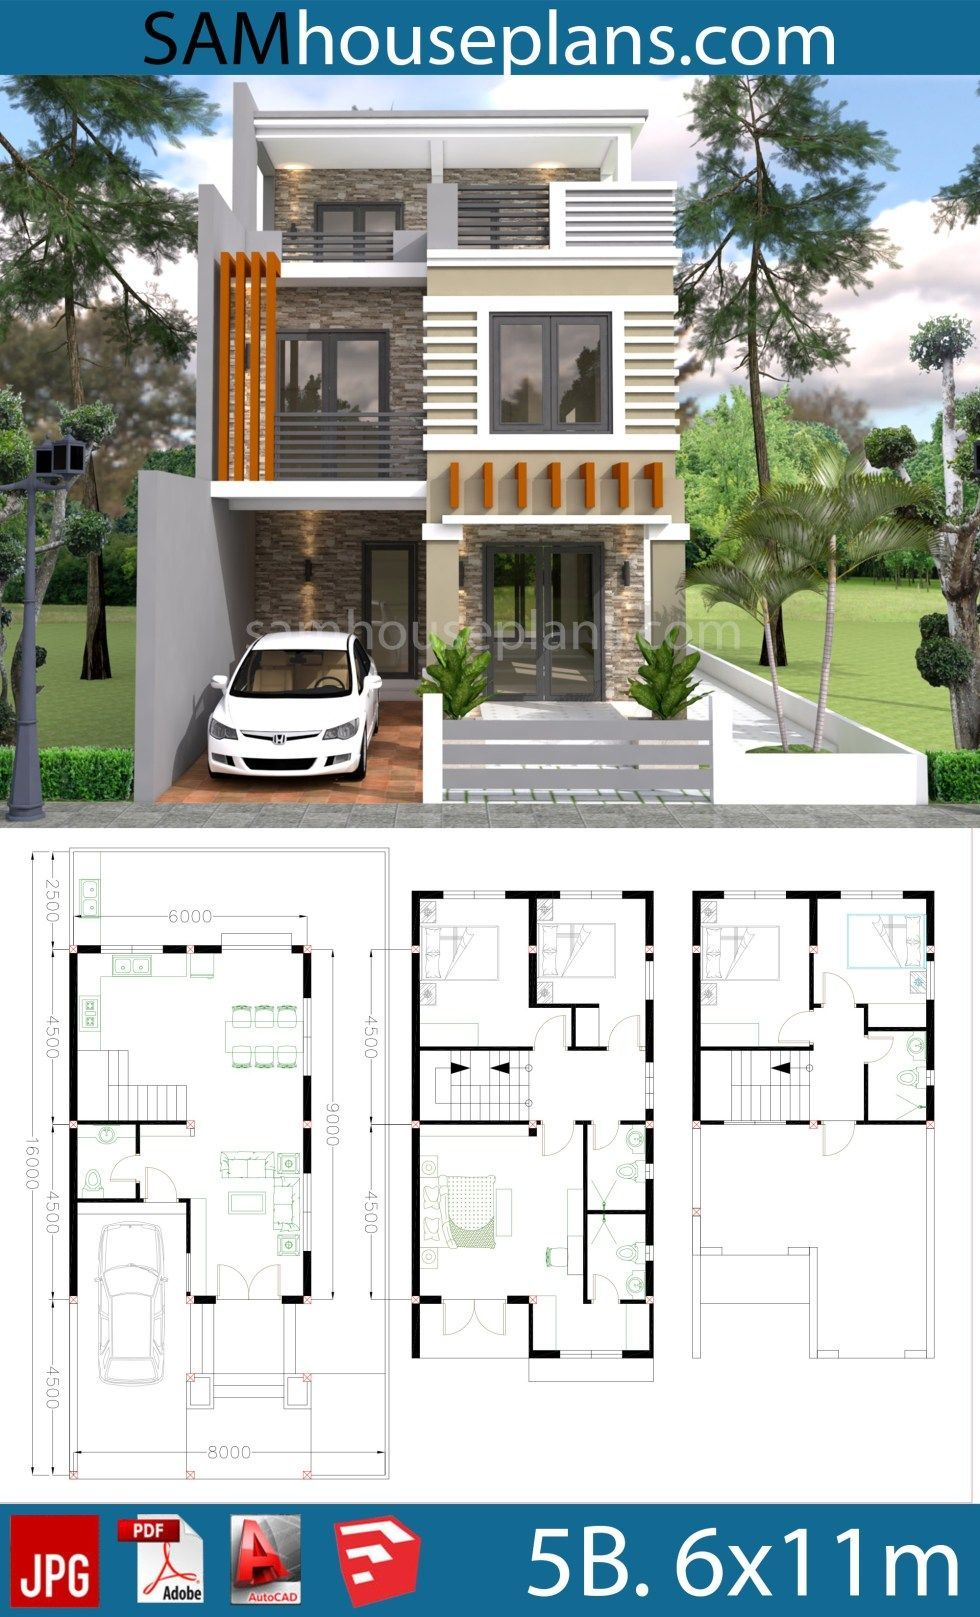 House Plans 6x11m With 5 Bedrooms Plot 8x16m House Construction Plan Duplex House Design Model House Plan